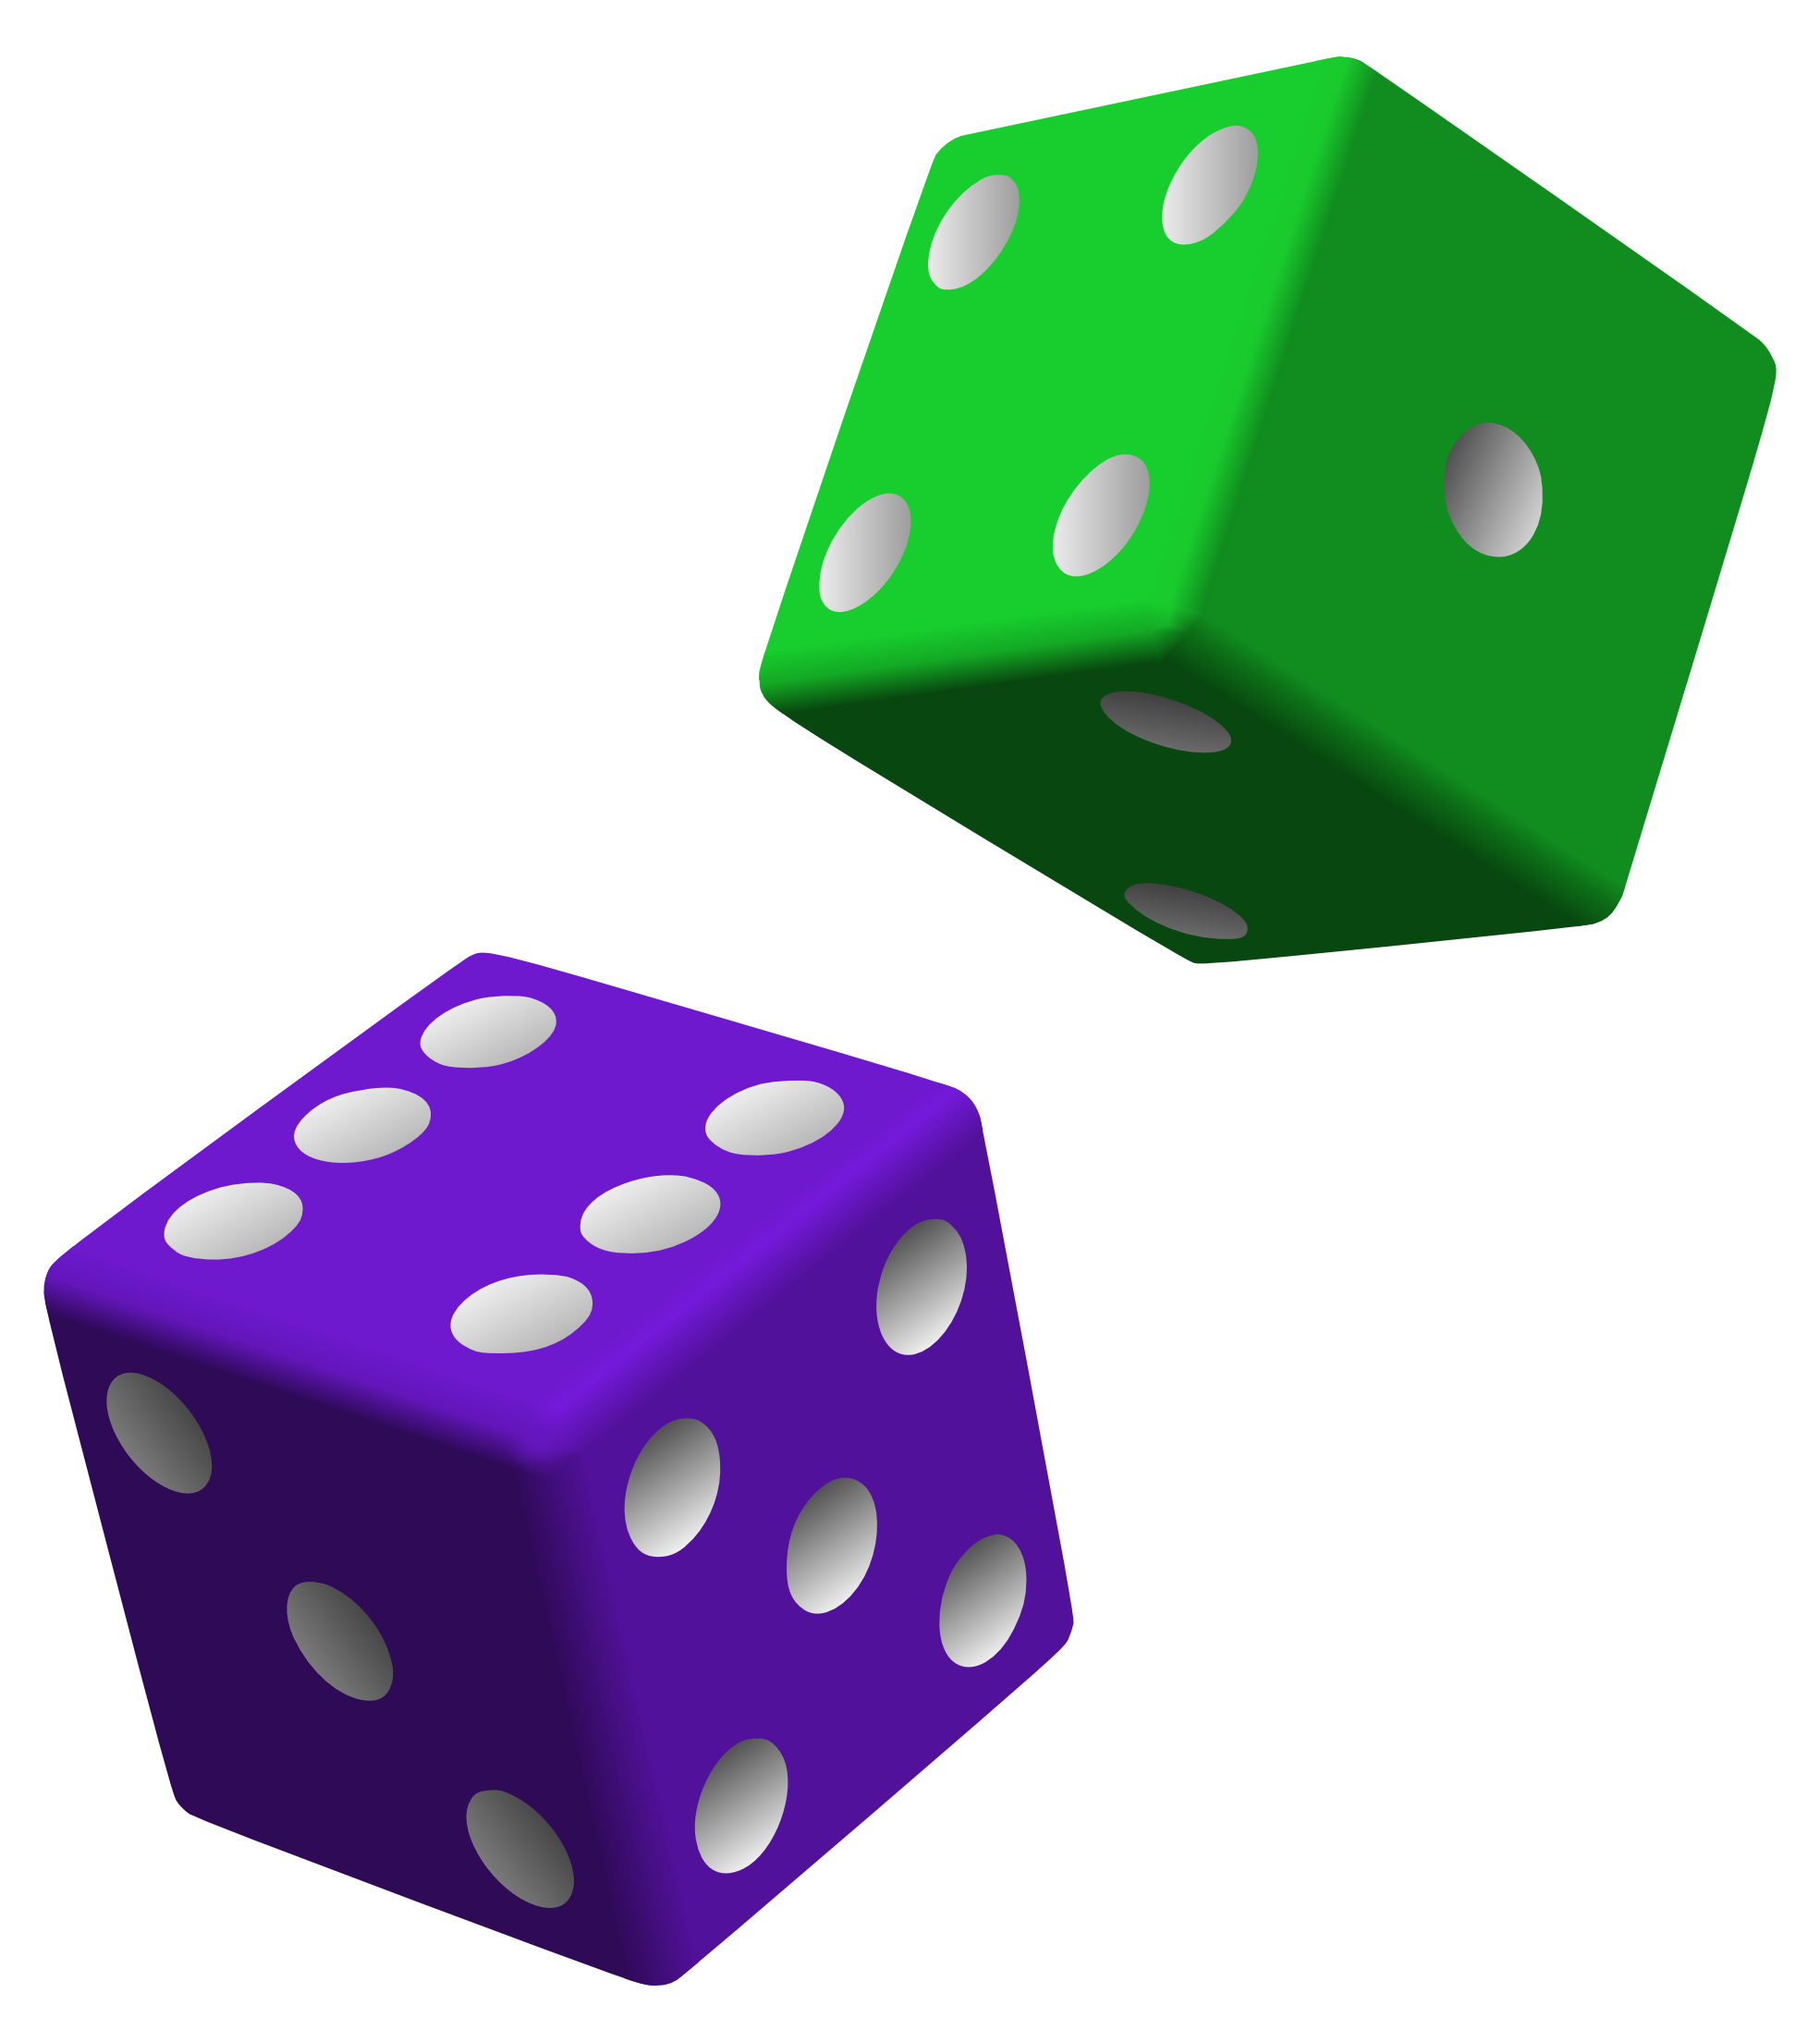 Purple Green Dice Png image #27652